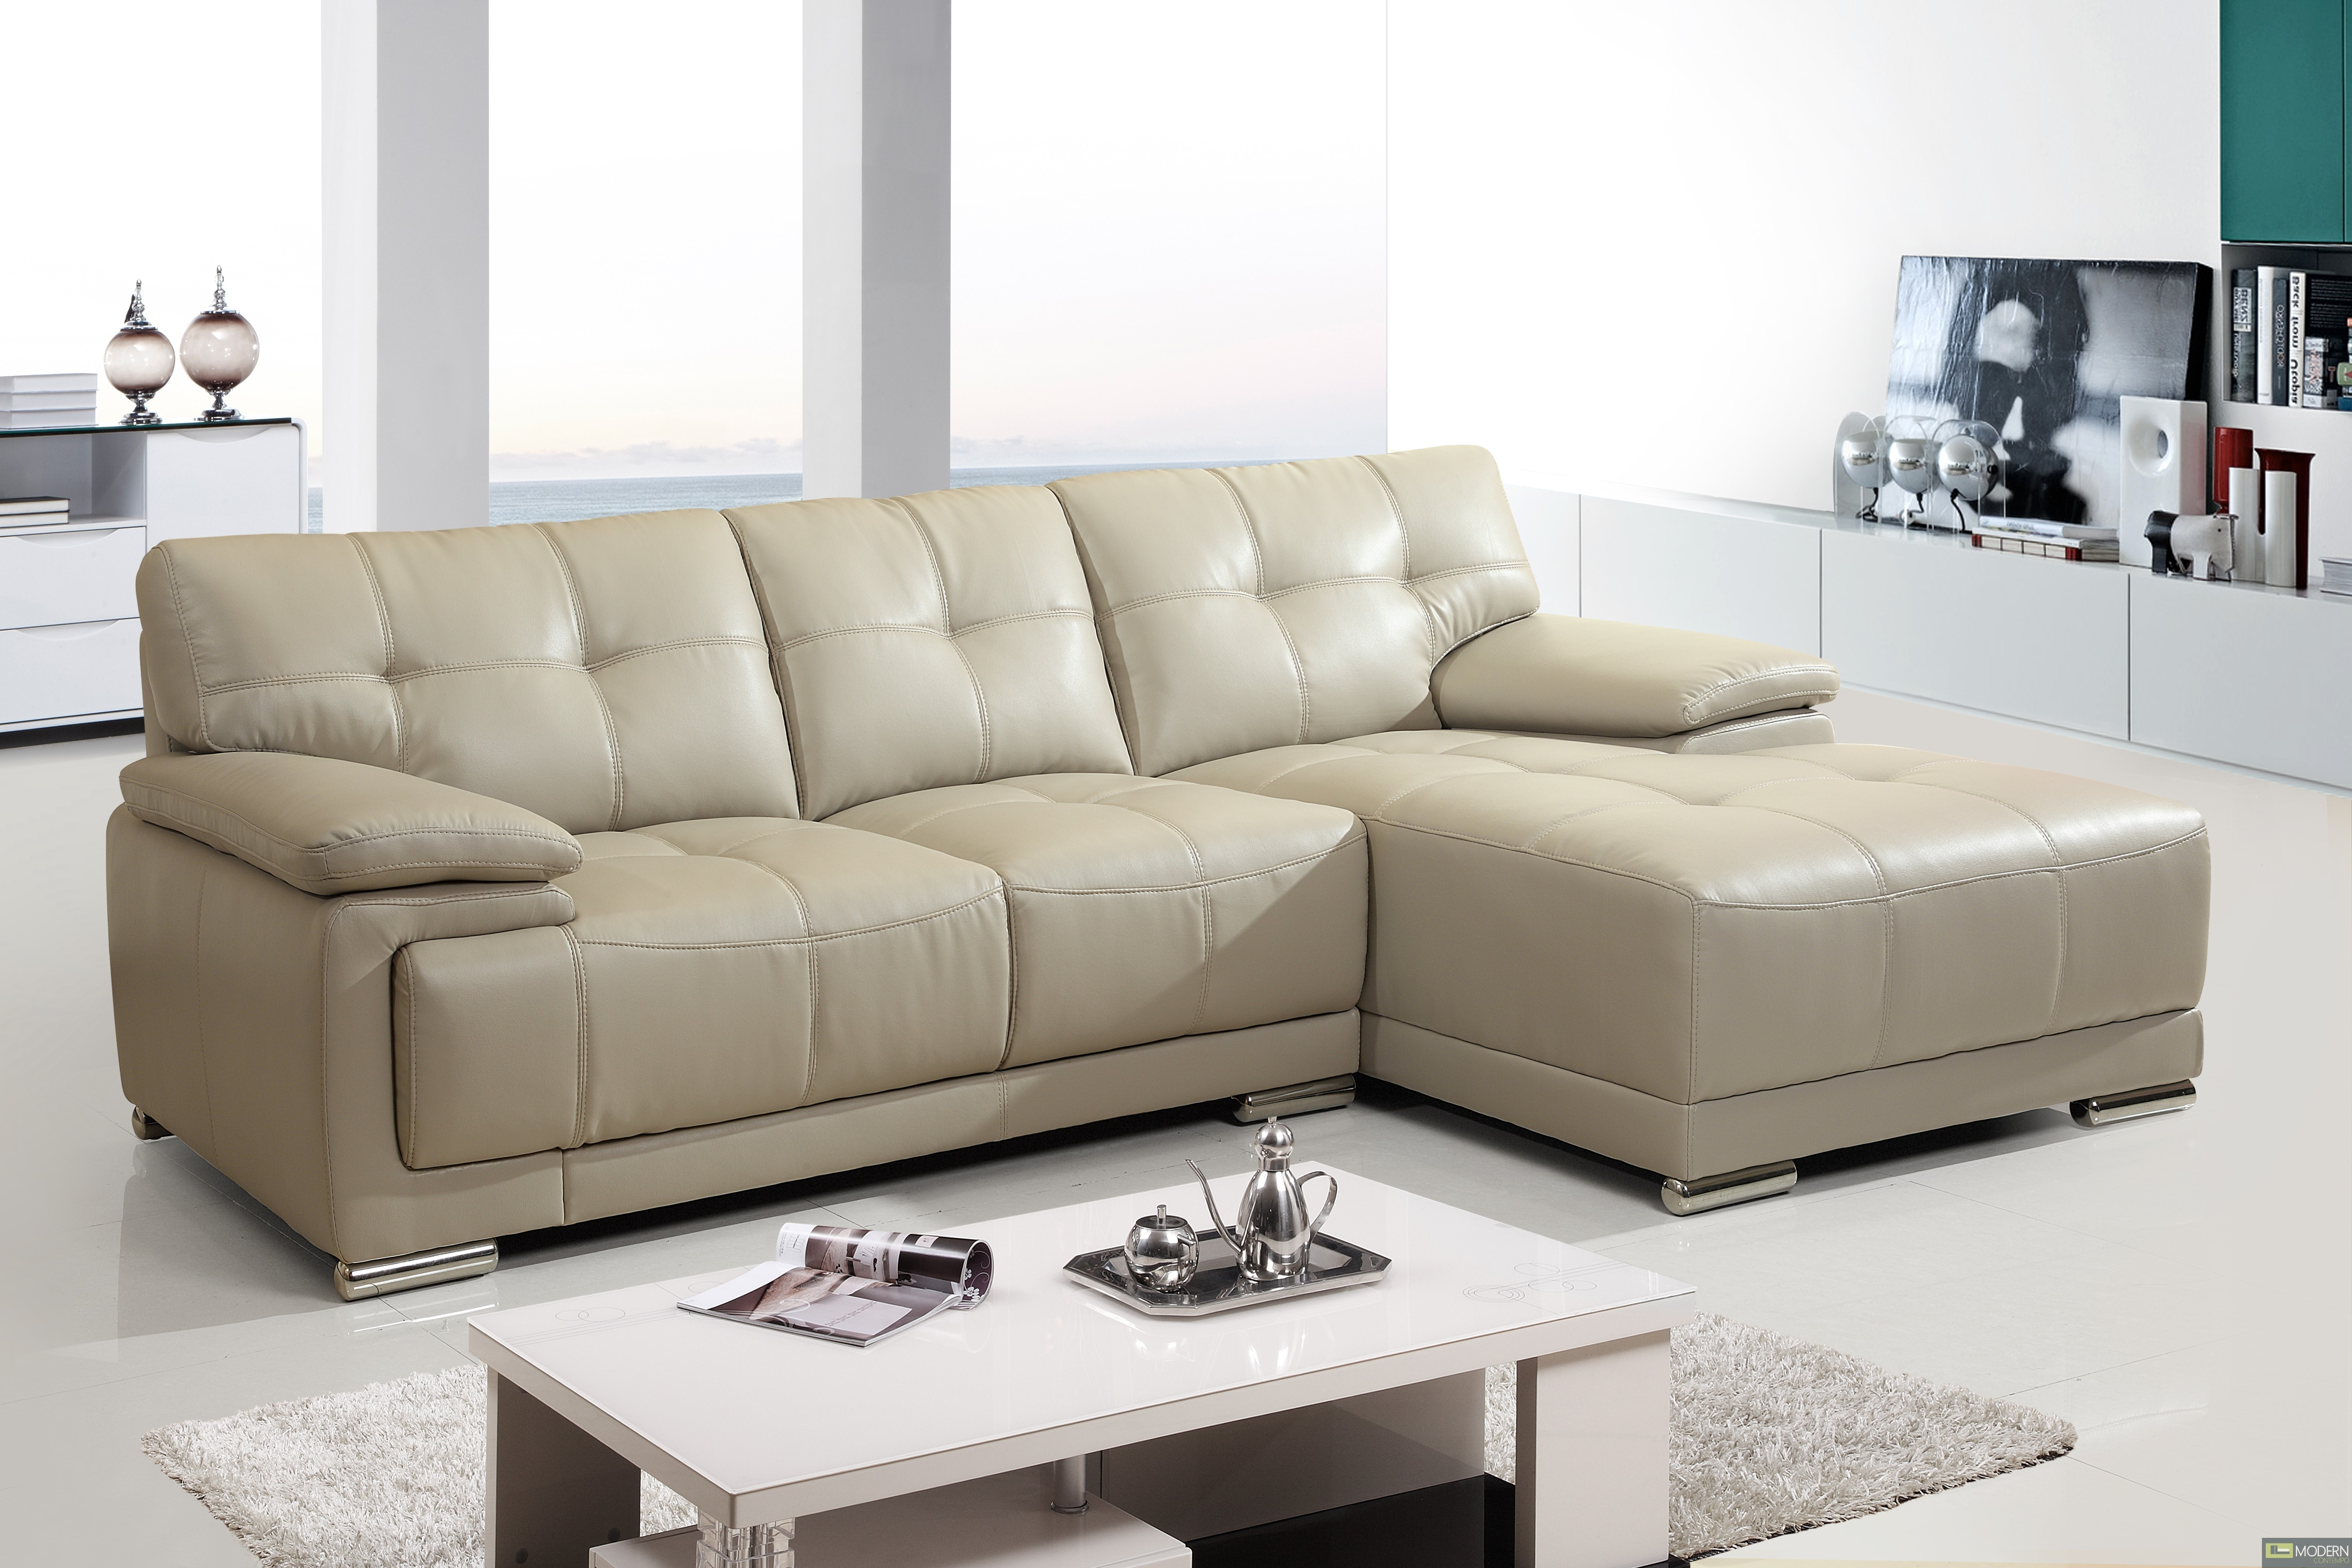 Modern Sectional Sofas Ontario Remarkable S8864 Cloud Living Room For Ontario Sectional Sofas (View 5 of 10)